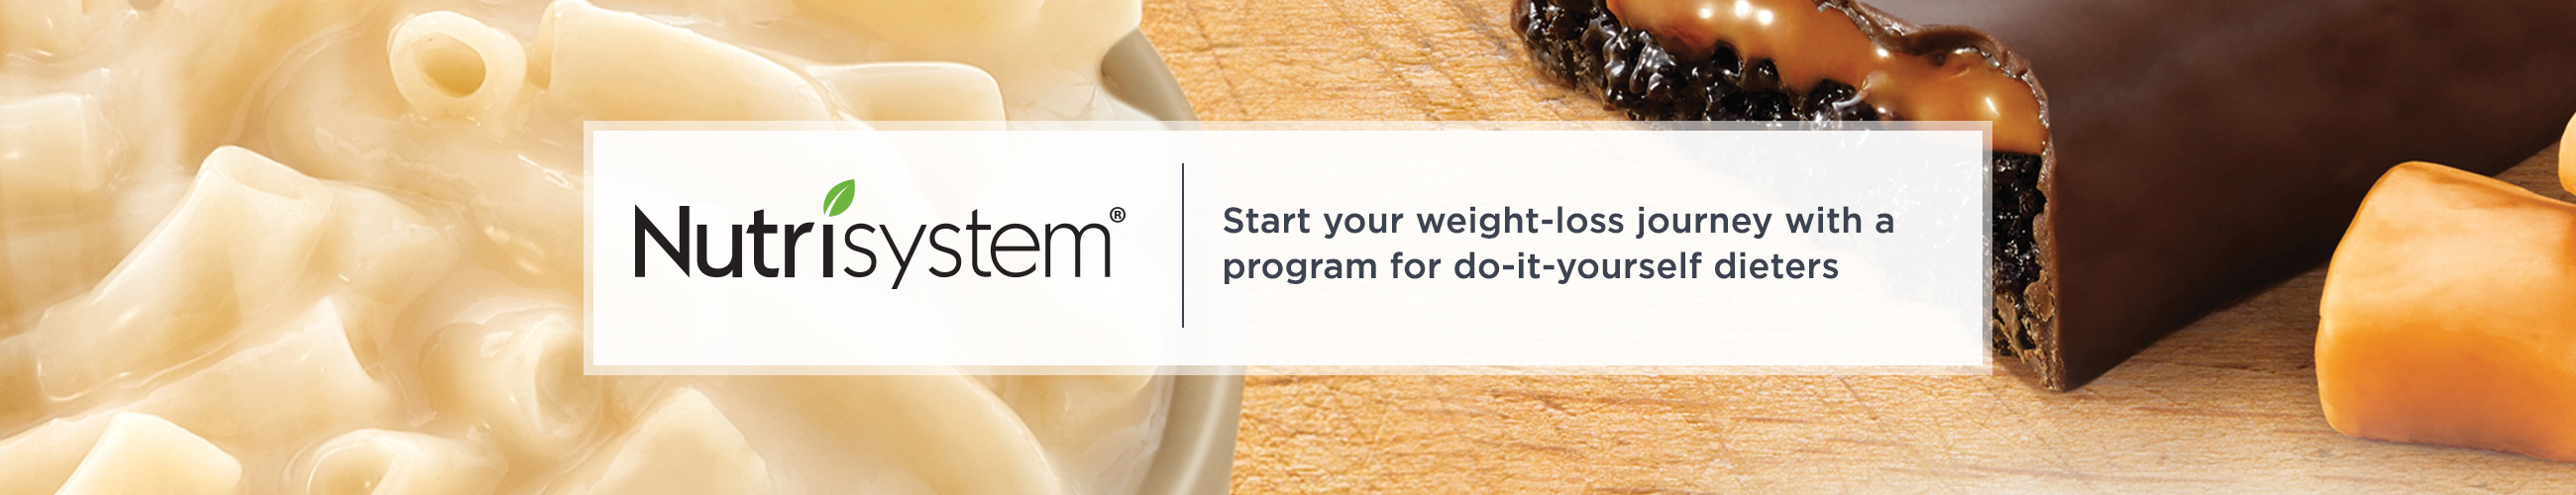 Nutrisystem nutrisystem meals alternatives qvc nutrisystemr start your weight loss journey with a program for do solutioingenieria Image collections